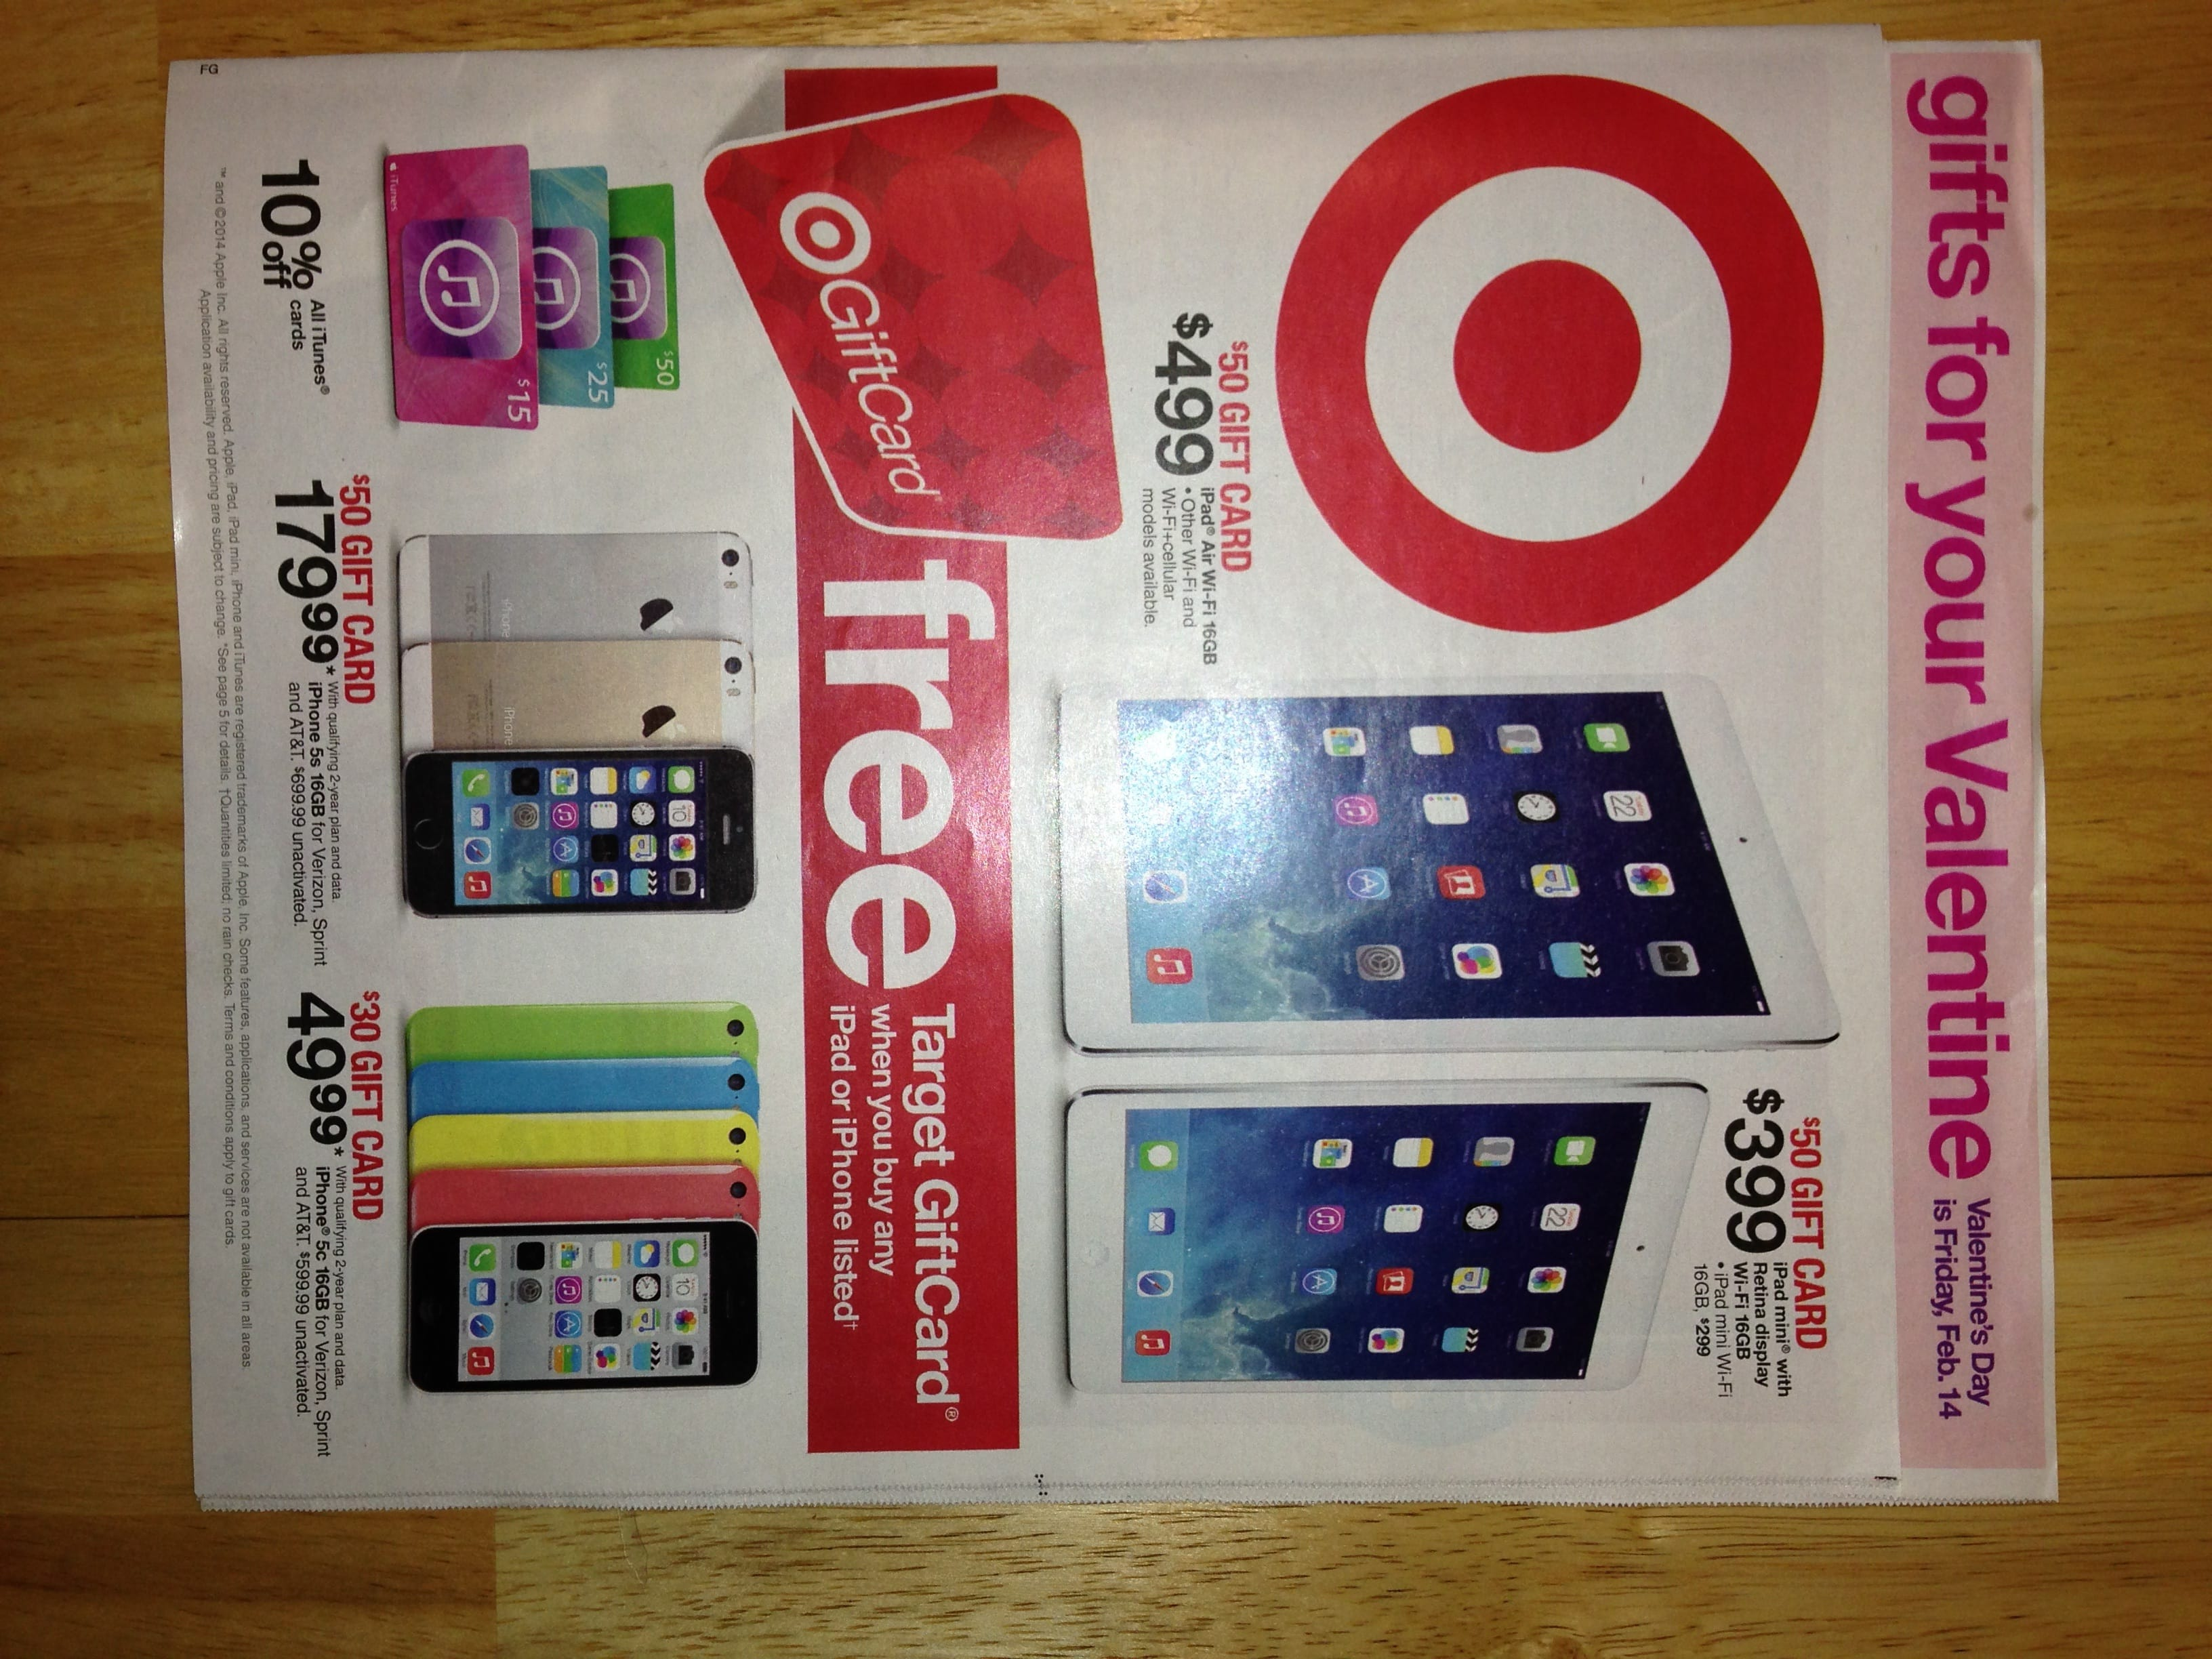 iPads with $50 Giftcard at Target 2/9-2/15.  Pricematch mini with Retina to Best Buy $349.99 for an even better deal (YMMV)